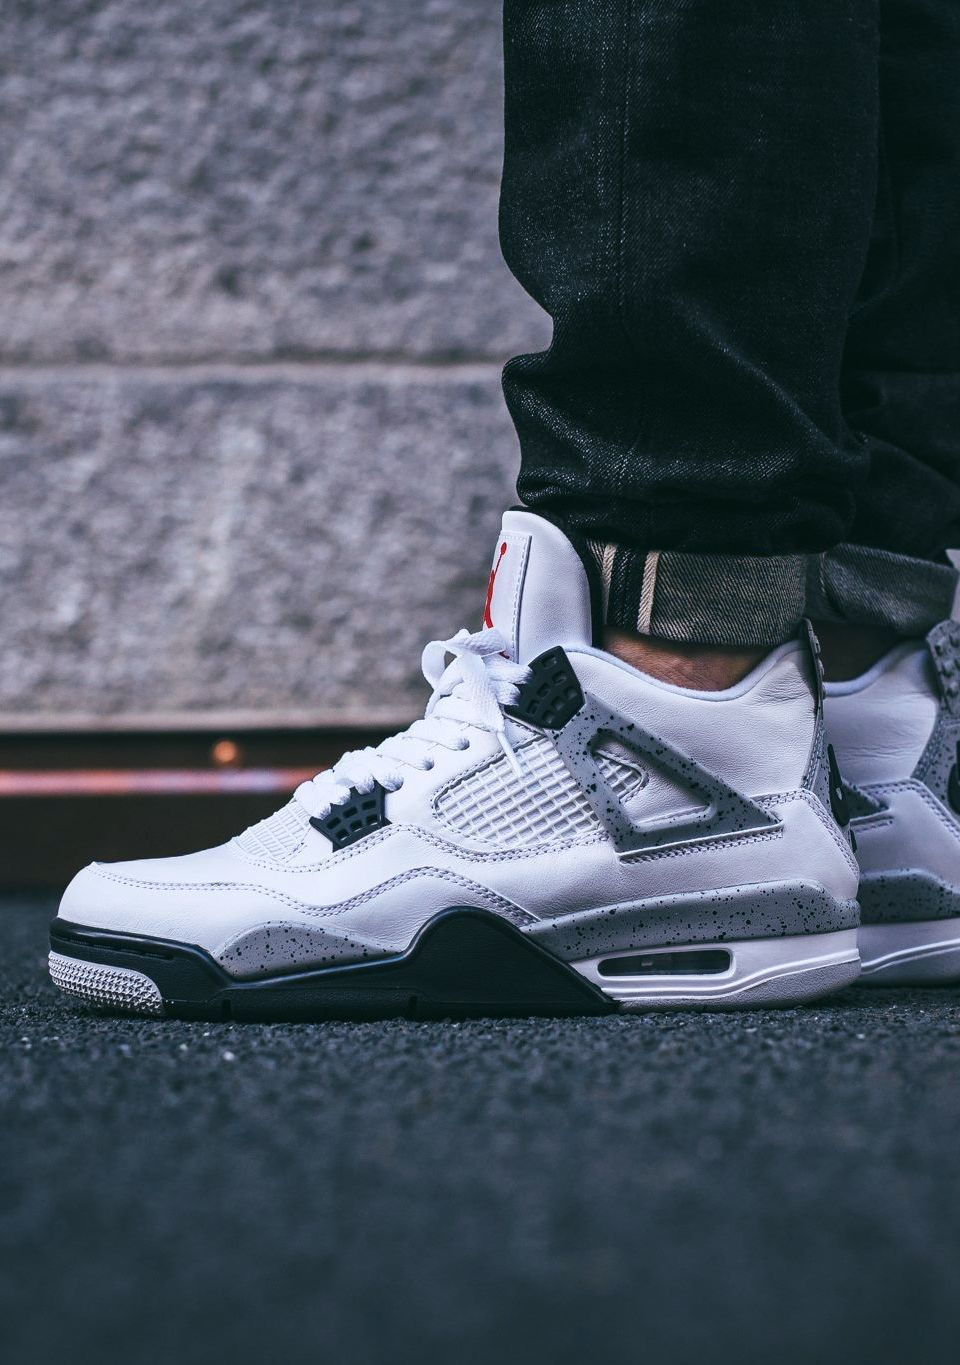 6af248c72a1e57 2019 的 Nike Air Jordan 4 Retro OG Cement (via Kicks-daily.com ...